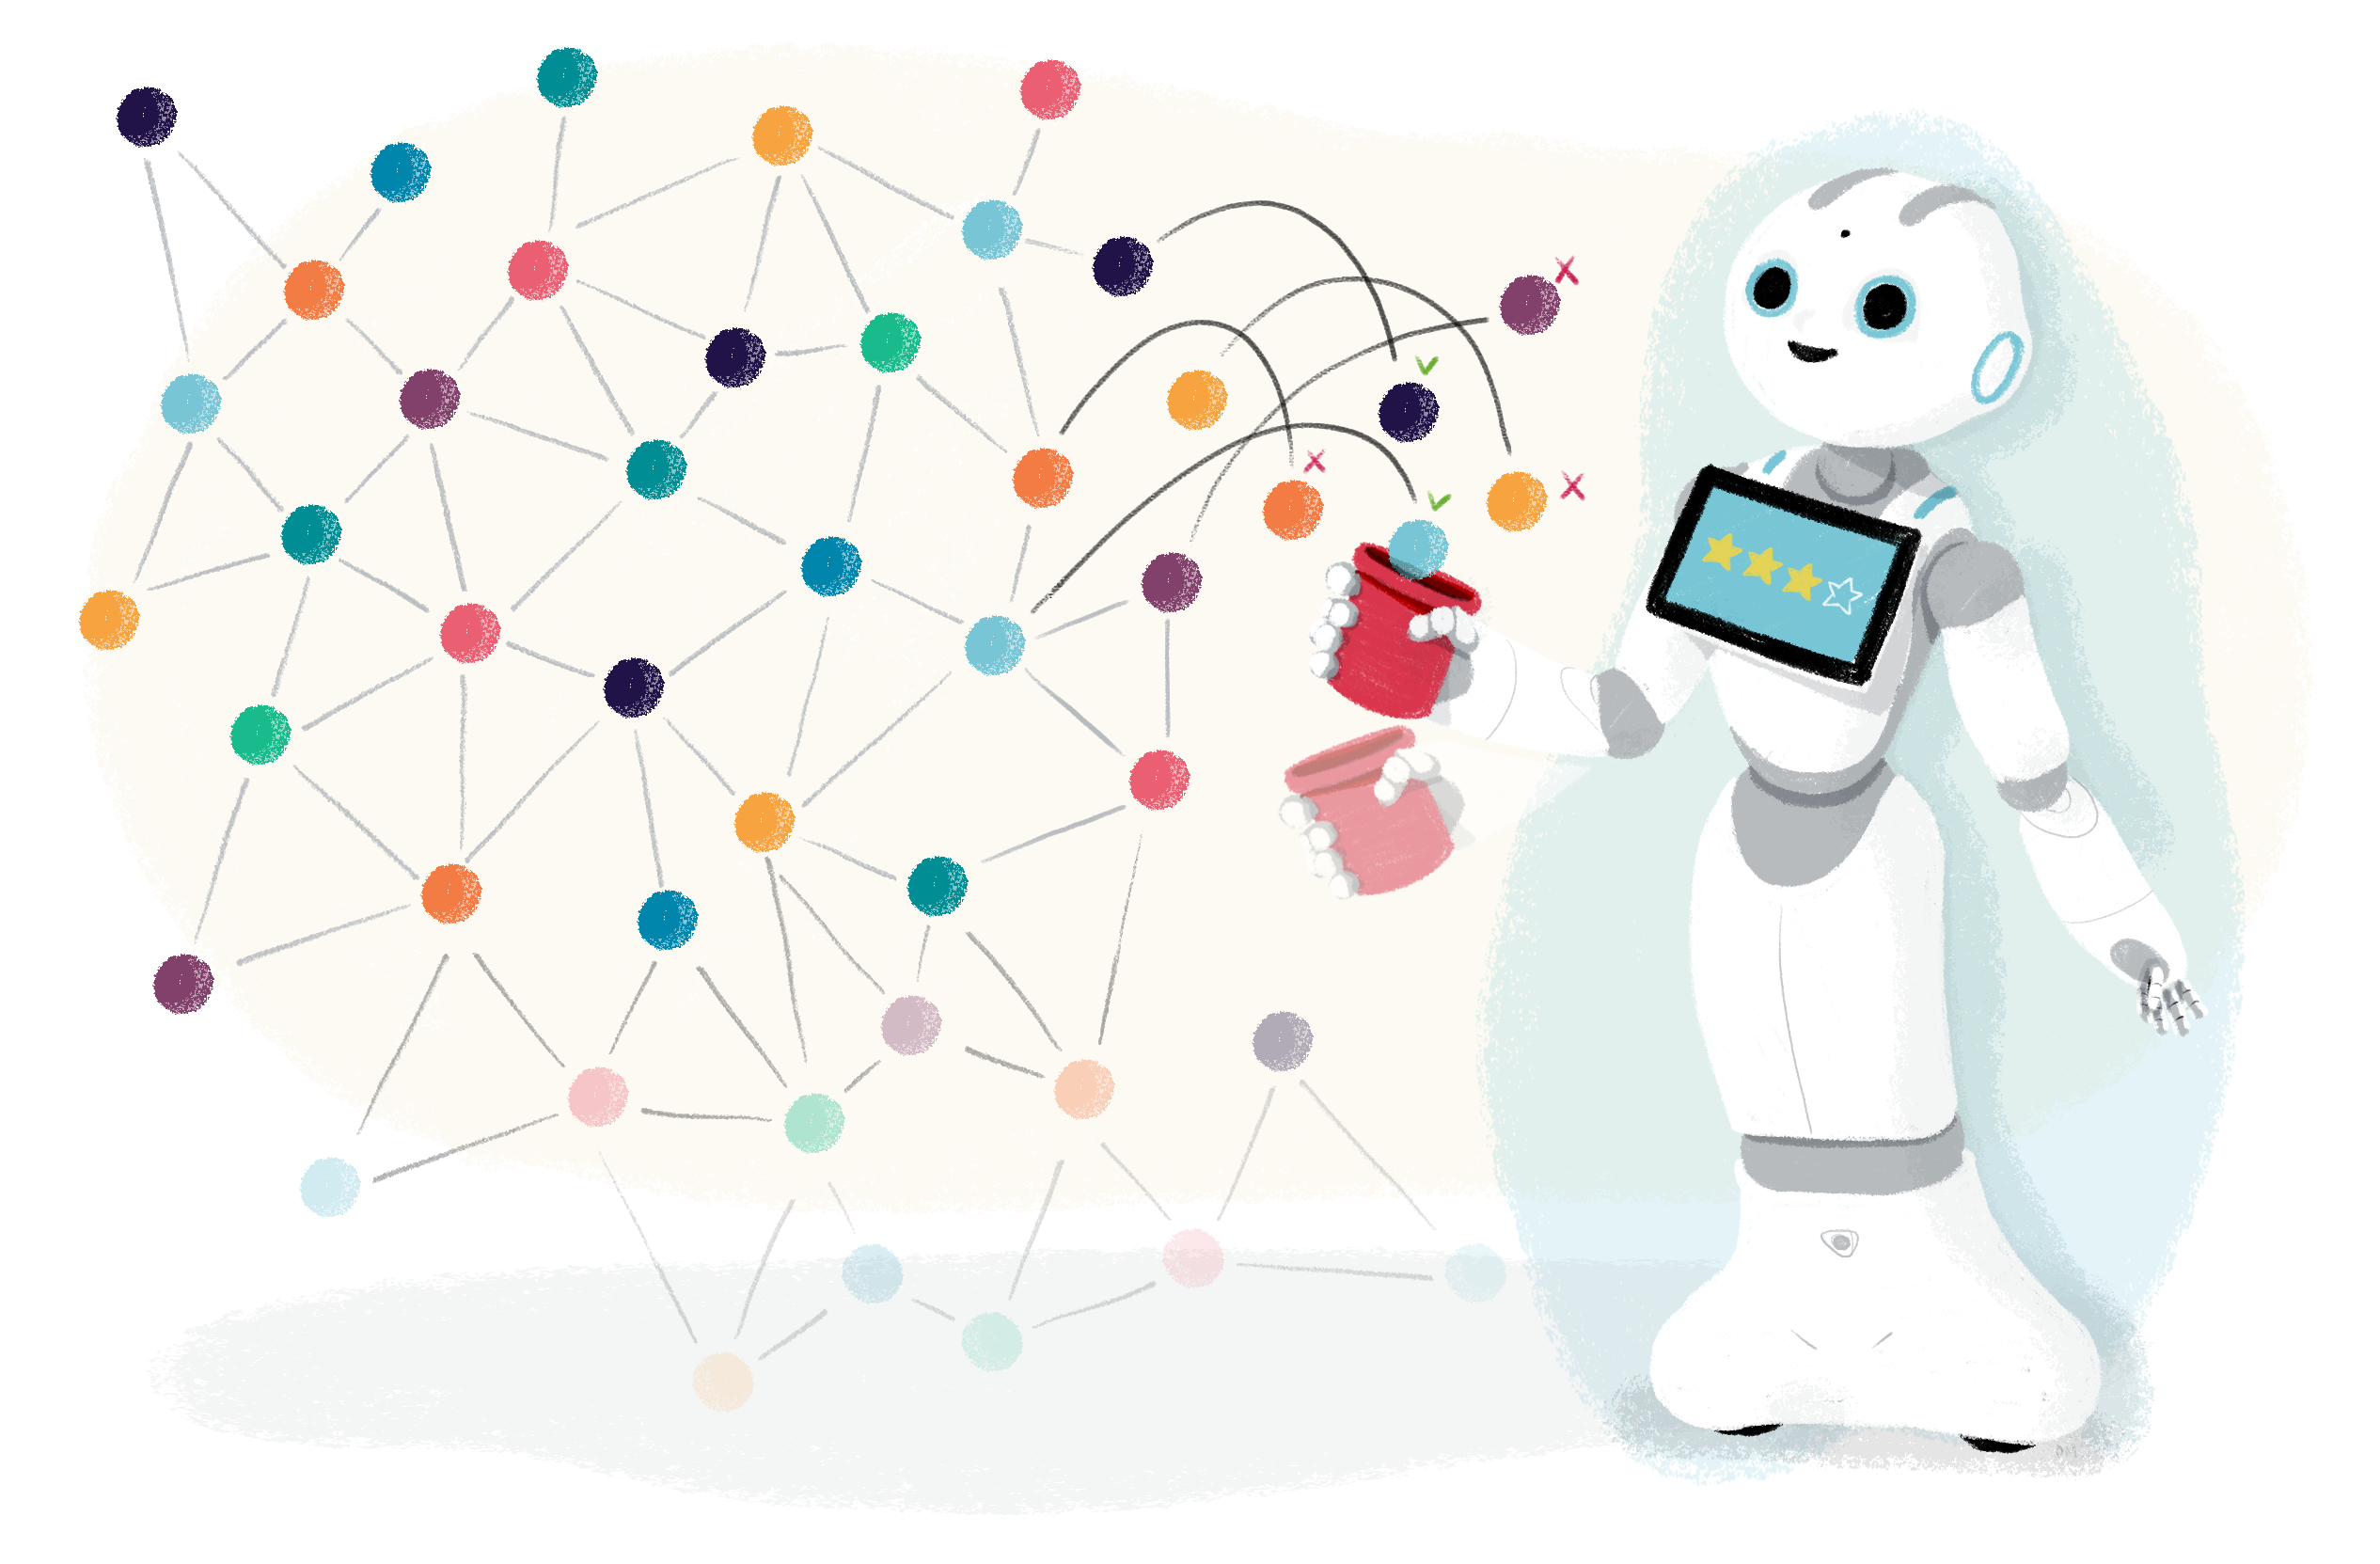 Pepper plays ball-in-cup with machine learning